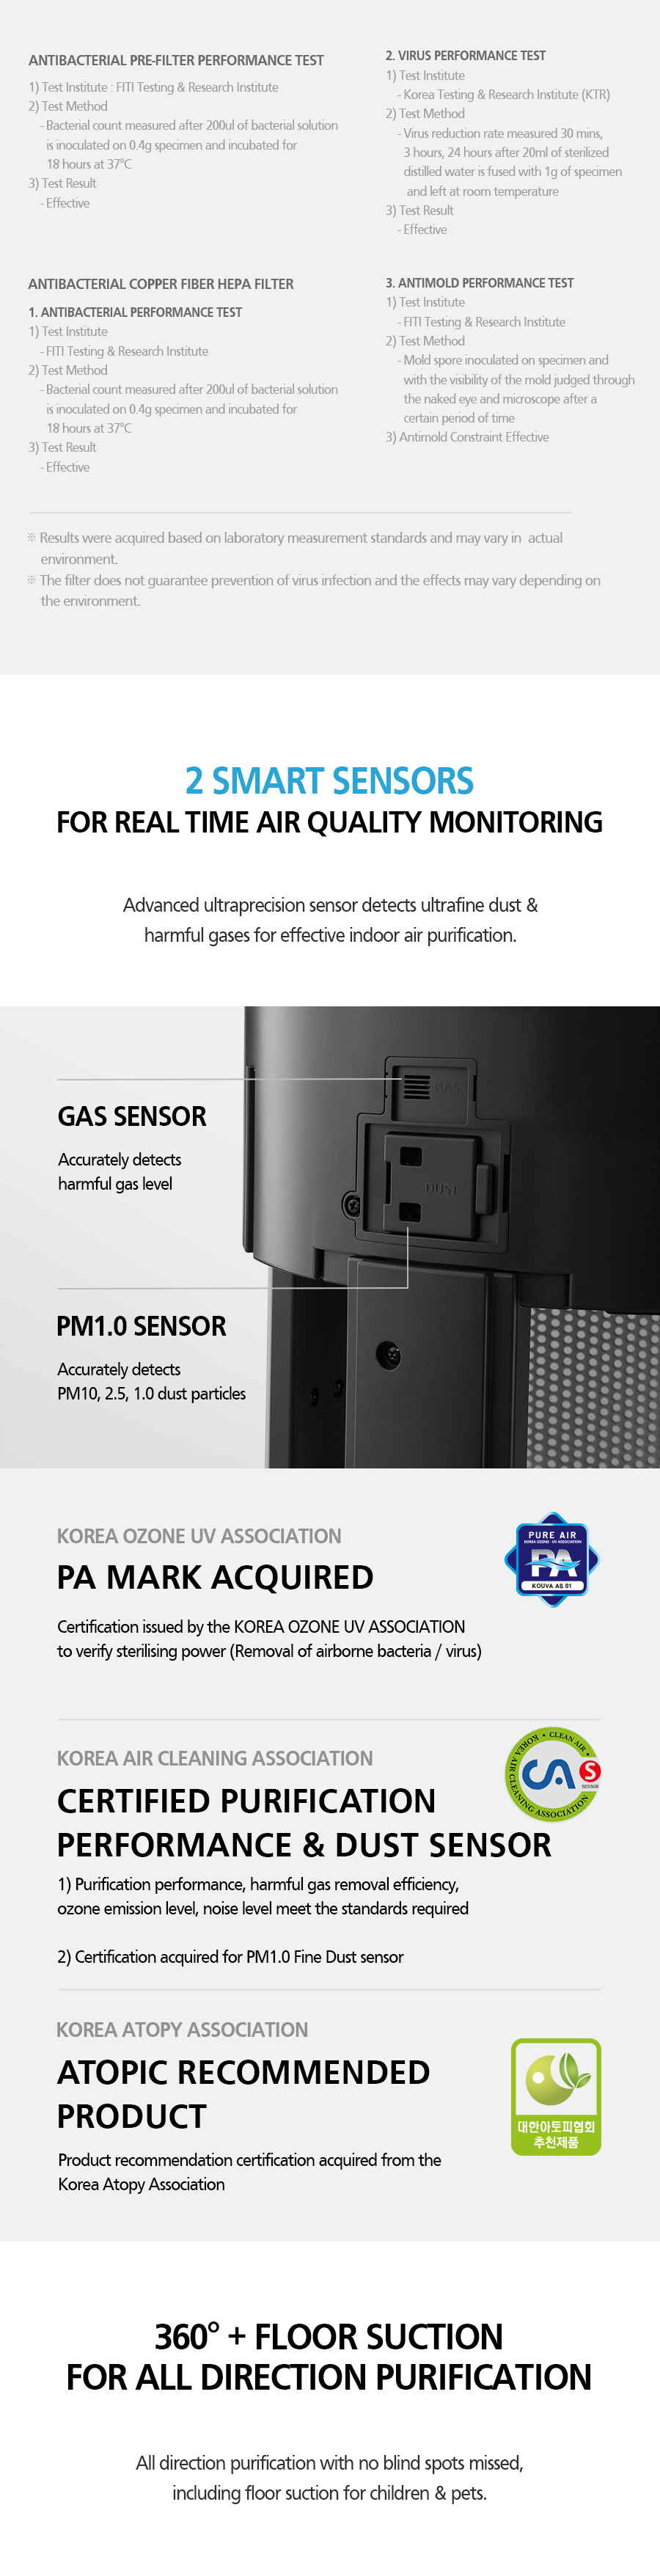 2 SMART SENSORS FOR REAL TIME AIR QUALITY MONITORING Advanced ultraprecision sensor detects ultrafine dust & harmful gases for effective indoor air purification.